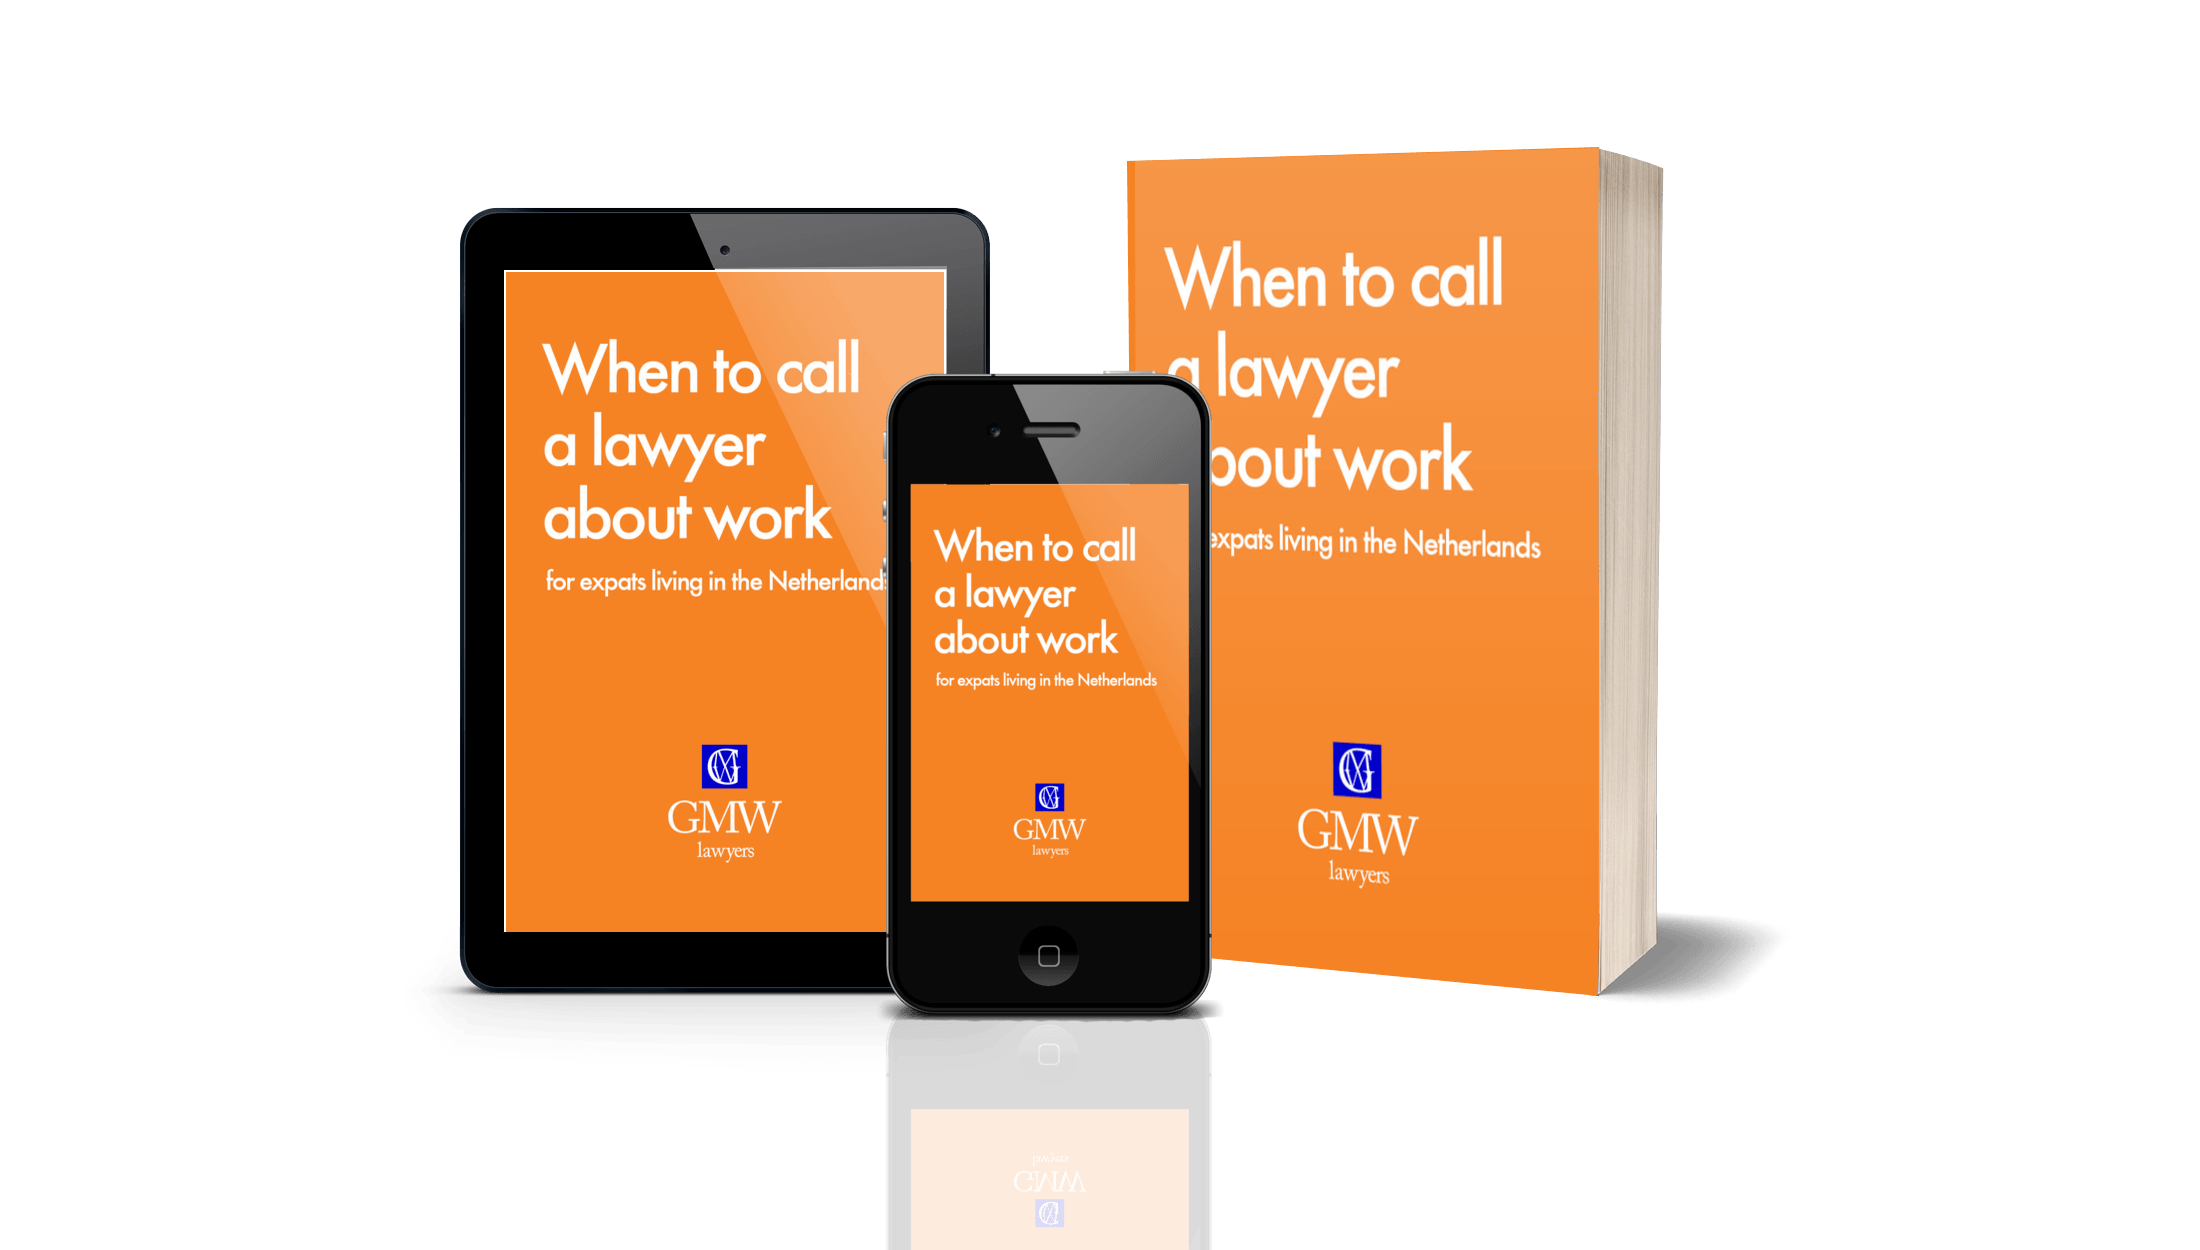 When to call a lawyer about work whitepaper